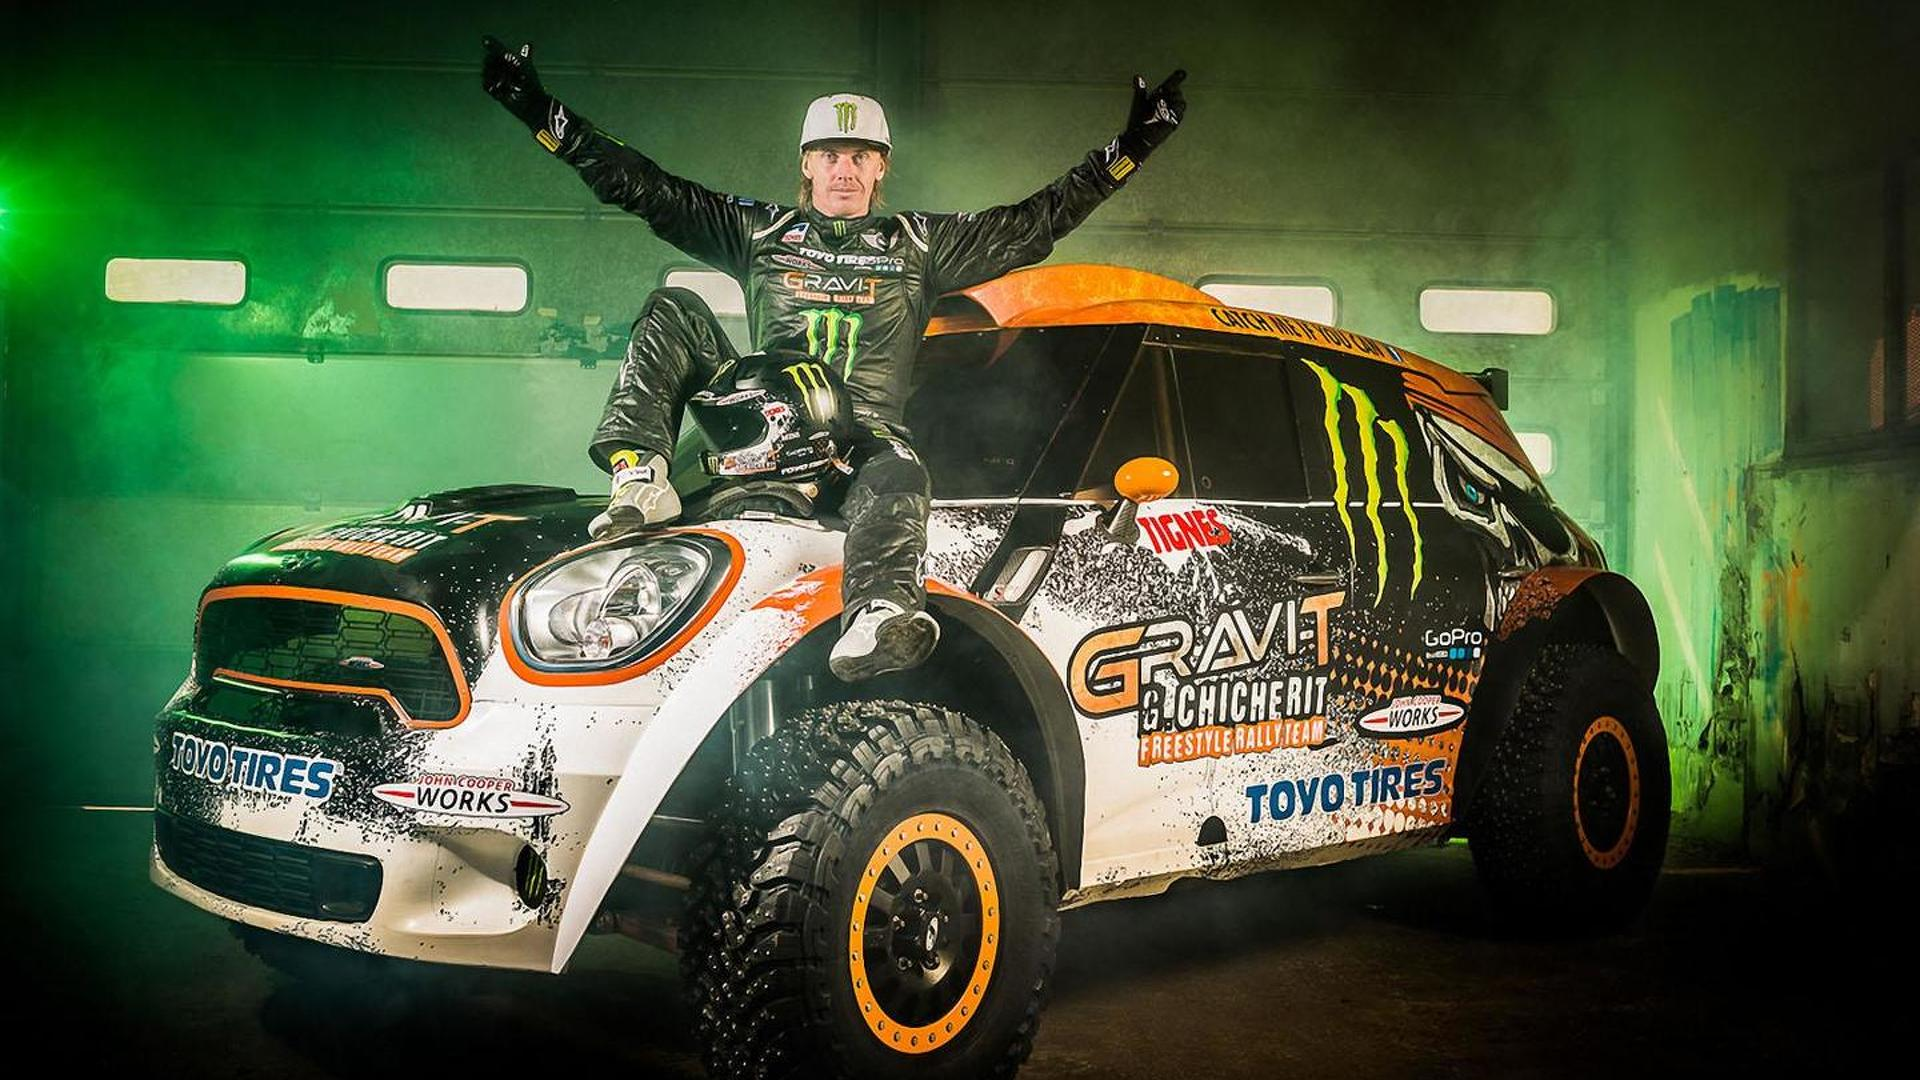 Guerlain Chicherit's longest car jump in the world attempt ends with brutal crash [video]